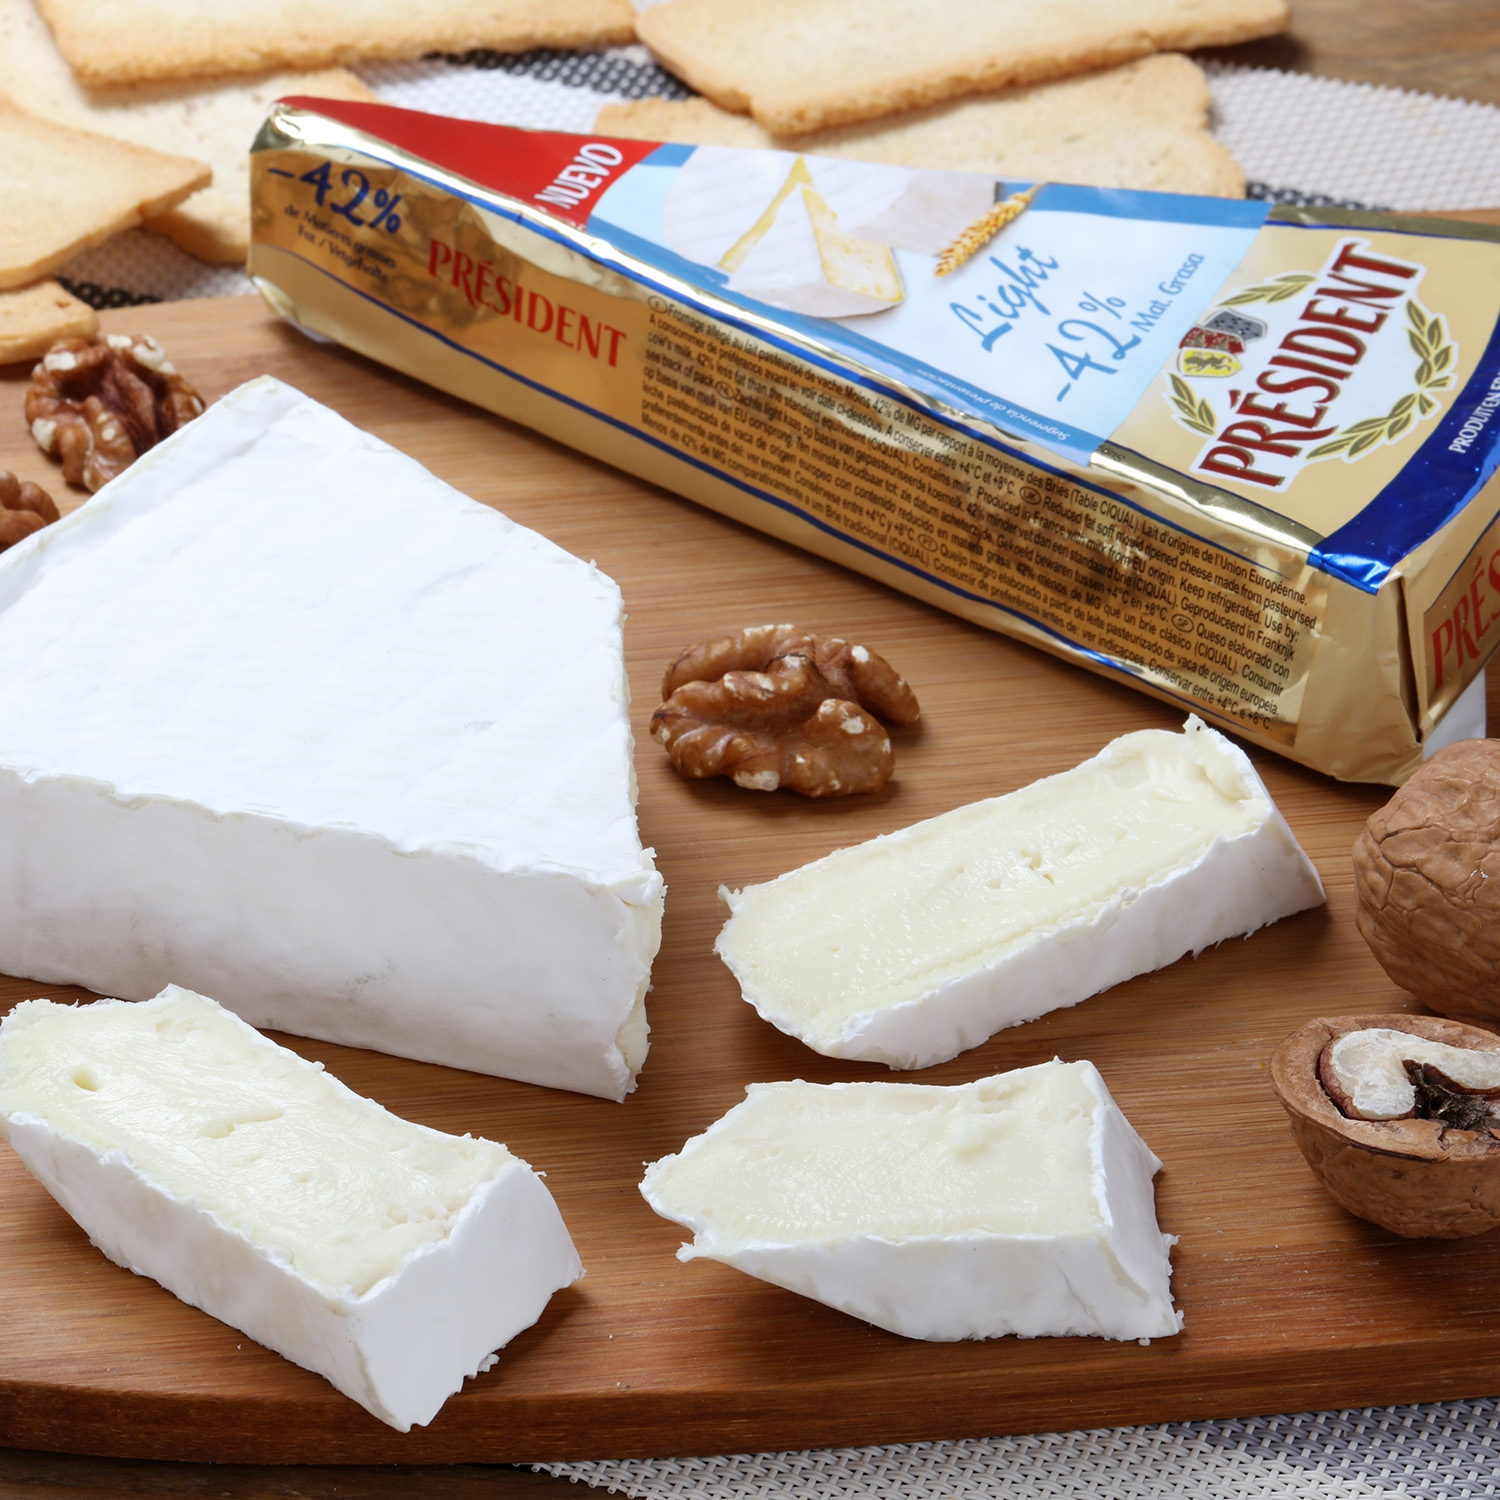 Queso brie light President cuña 200 g - 5